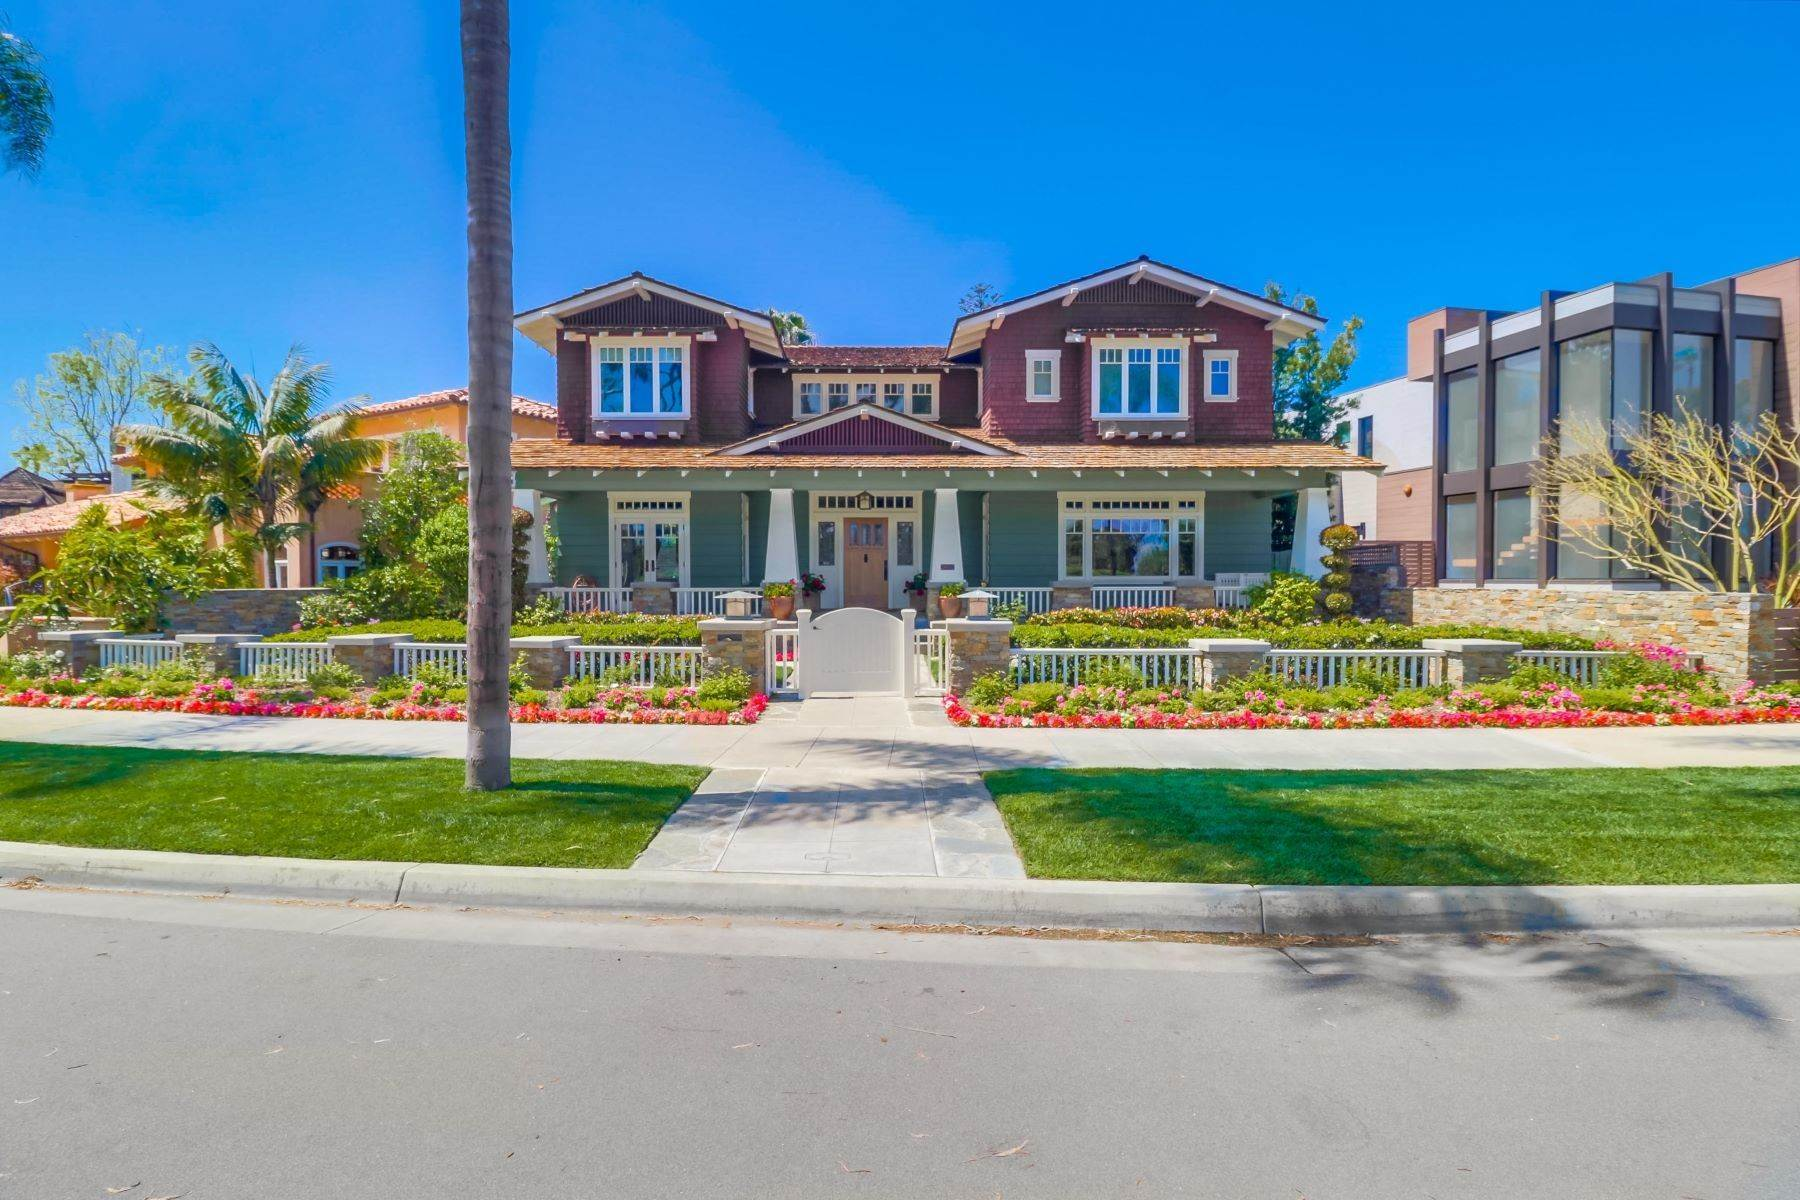 2. Single Family Homes for Sale at 922 Glorietta Blvd Coronado, California 92118 United States